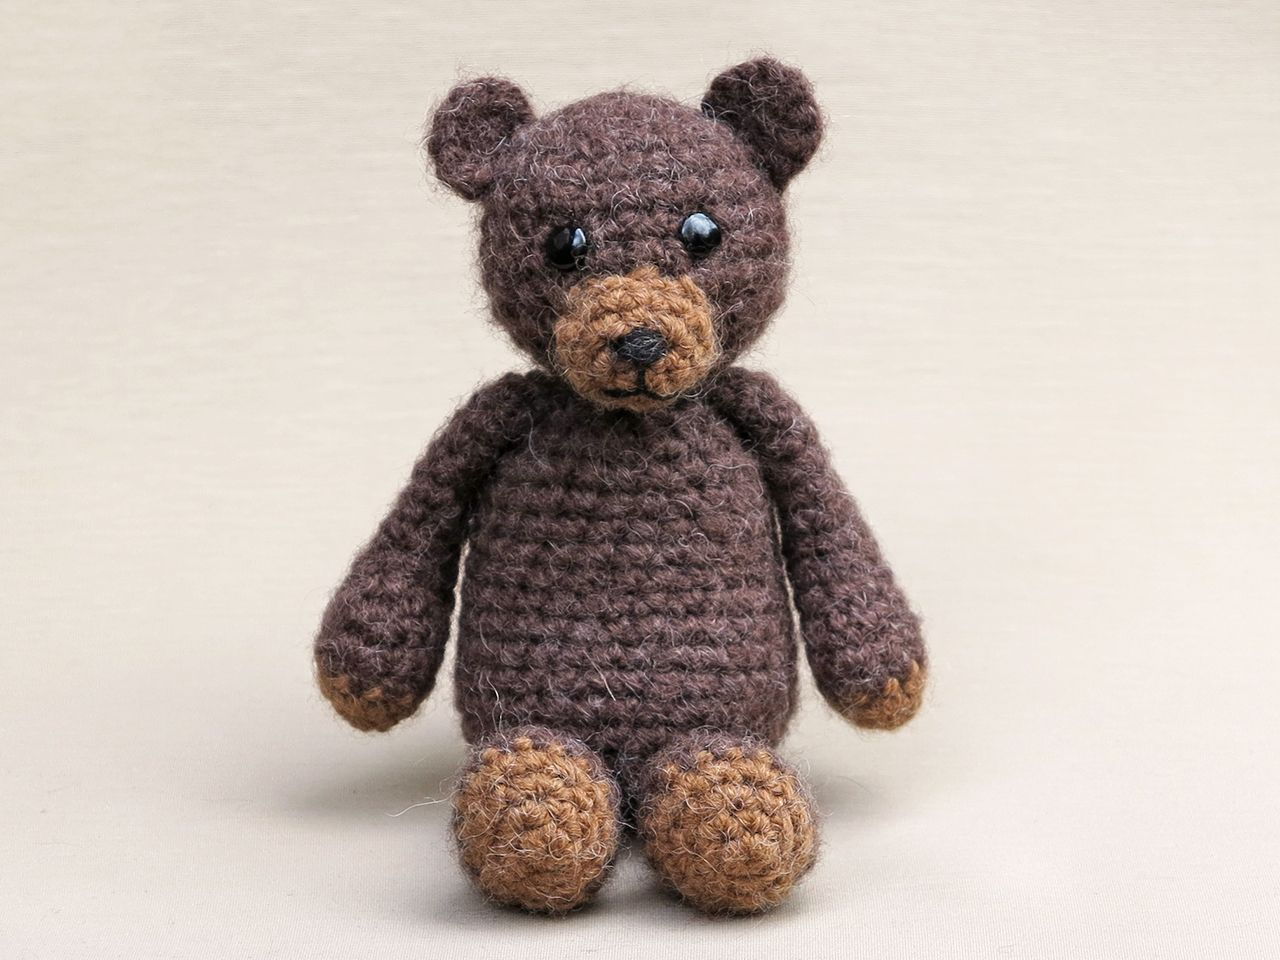 A Walk Trough How To Make This Crochet Teddy Bear Its About The